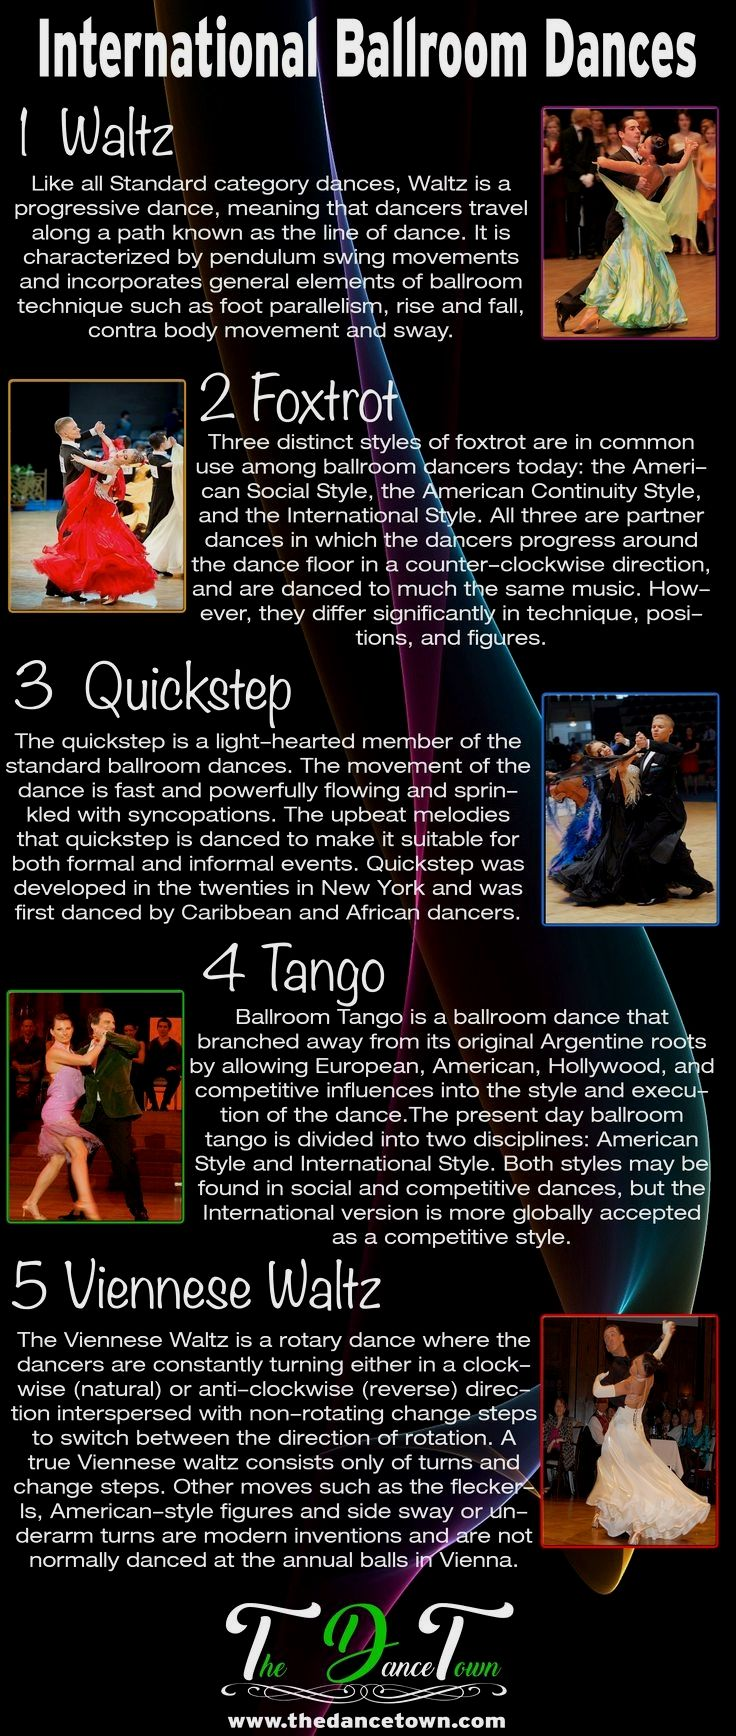 Ballroom Dancing Ballroom Dancing Is Really As Popular As At Any Time A Primary Reason Is Considered The Countle Ballroom Dance Dance Technique Dance Lessons